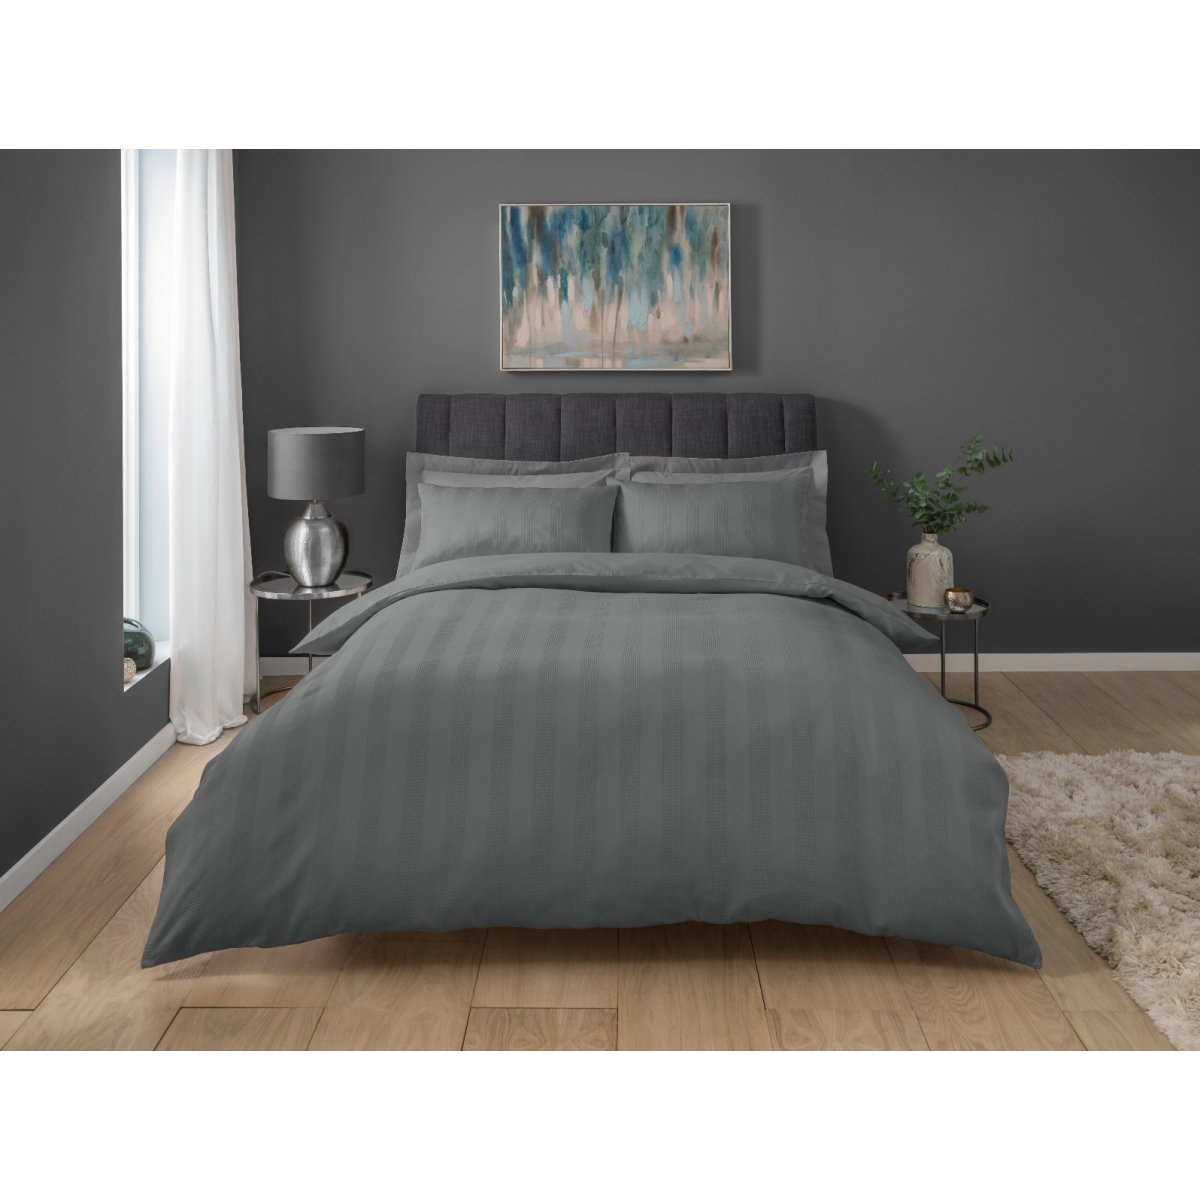 Stripe Waffle Charcoal Bedding - Duvet Cover and Pillowcase Set